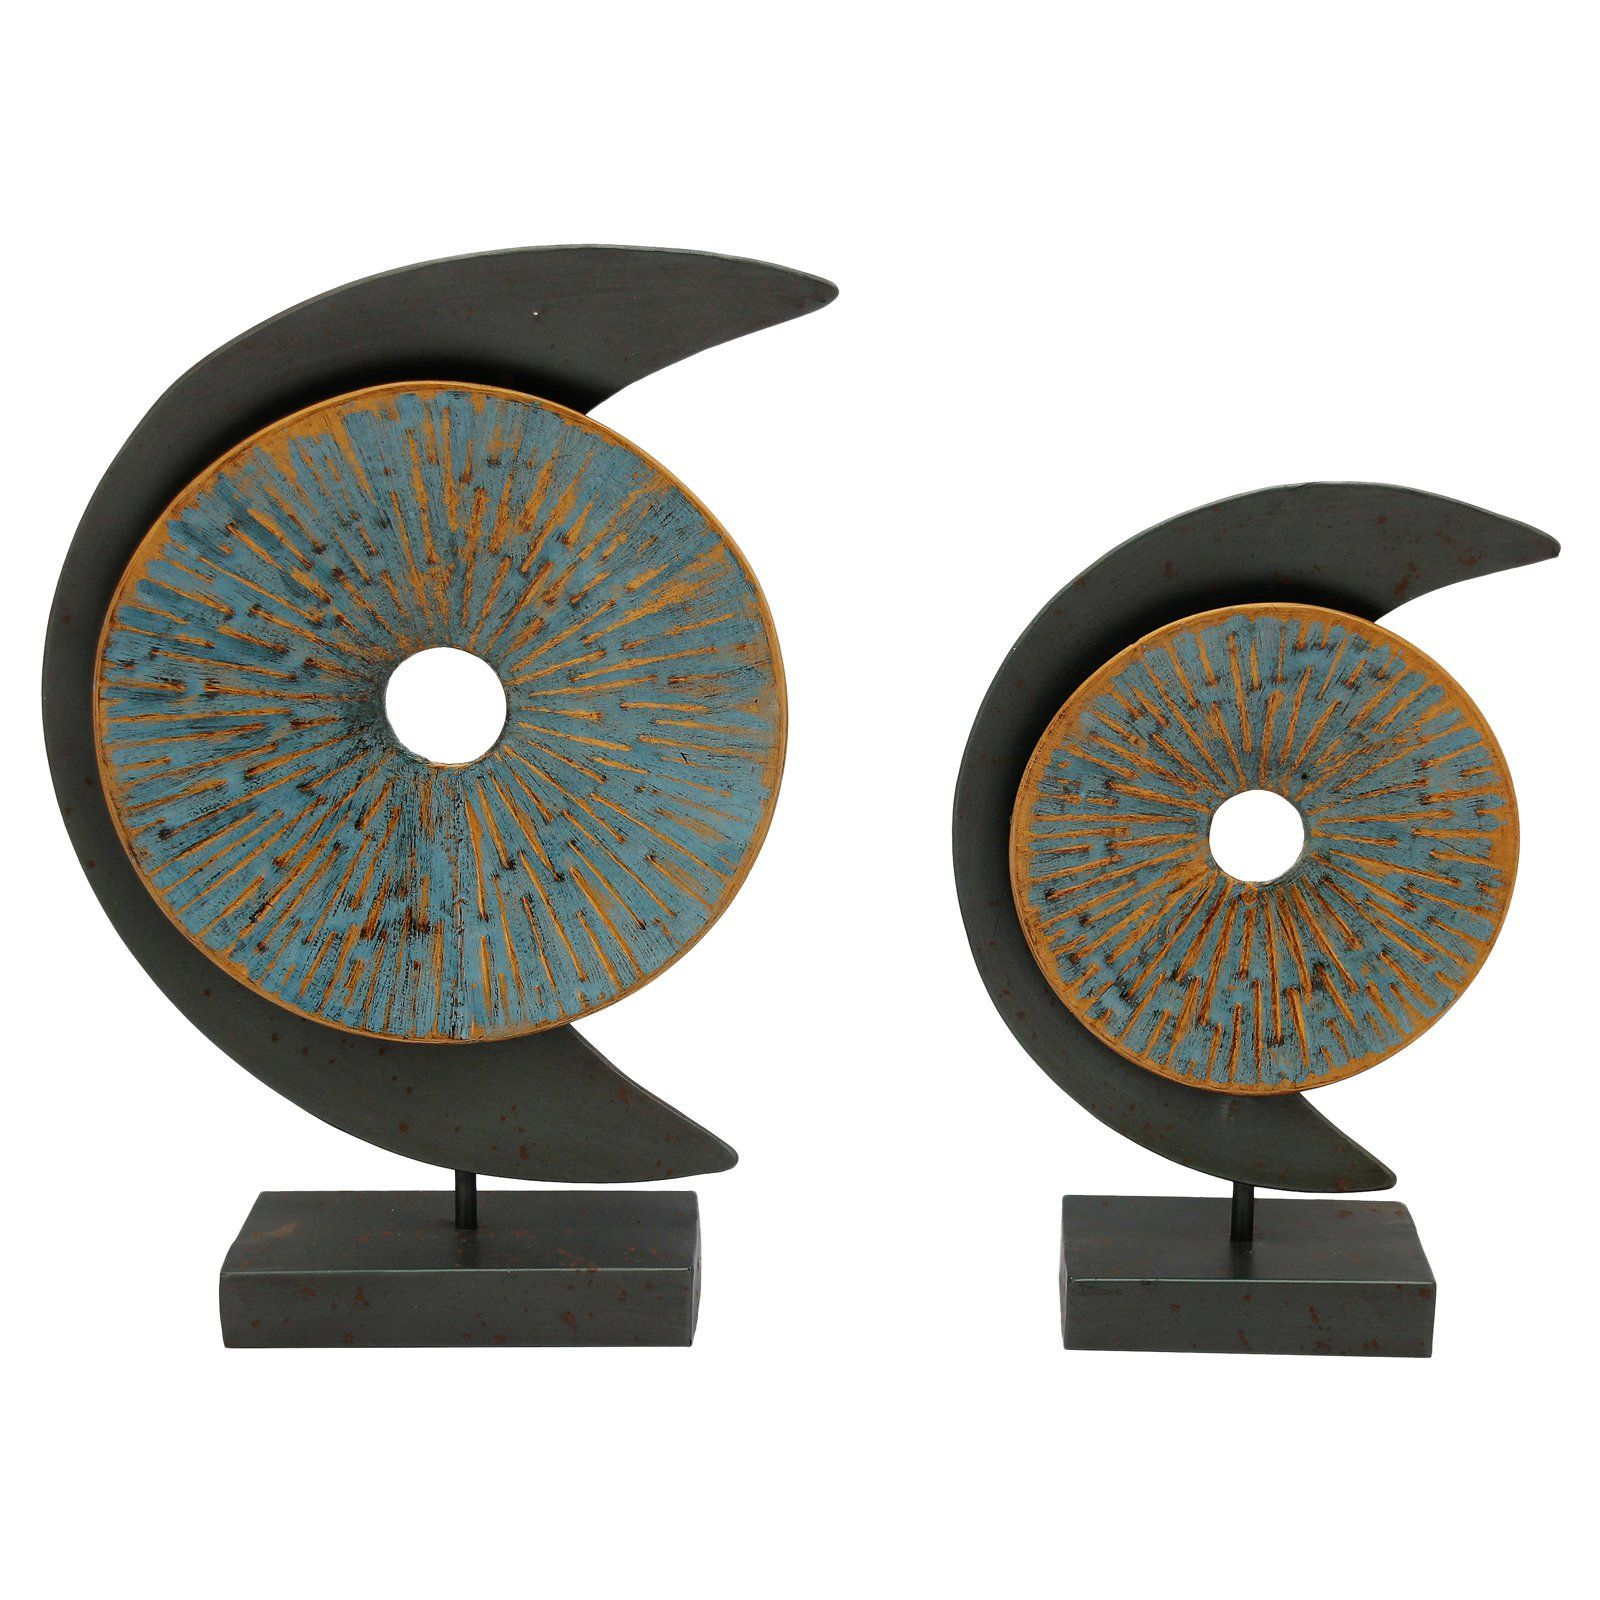 Moes home collection blue moon piece sculpture hw